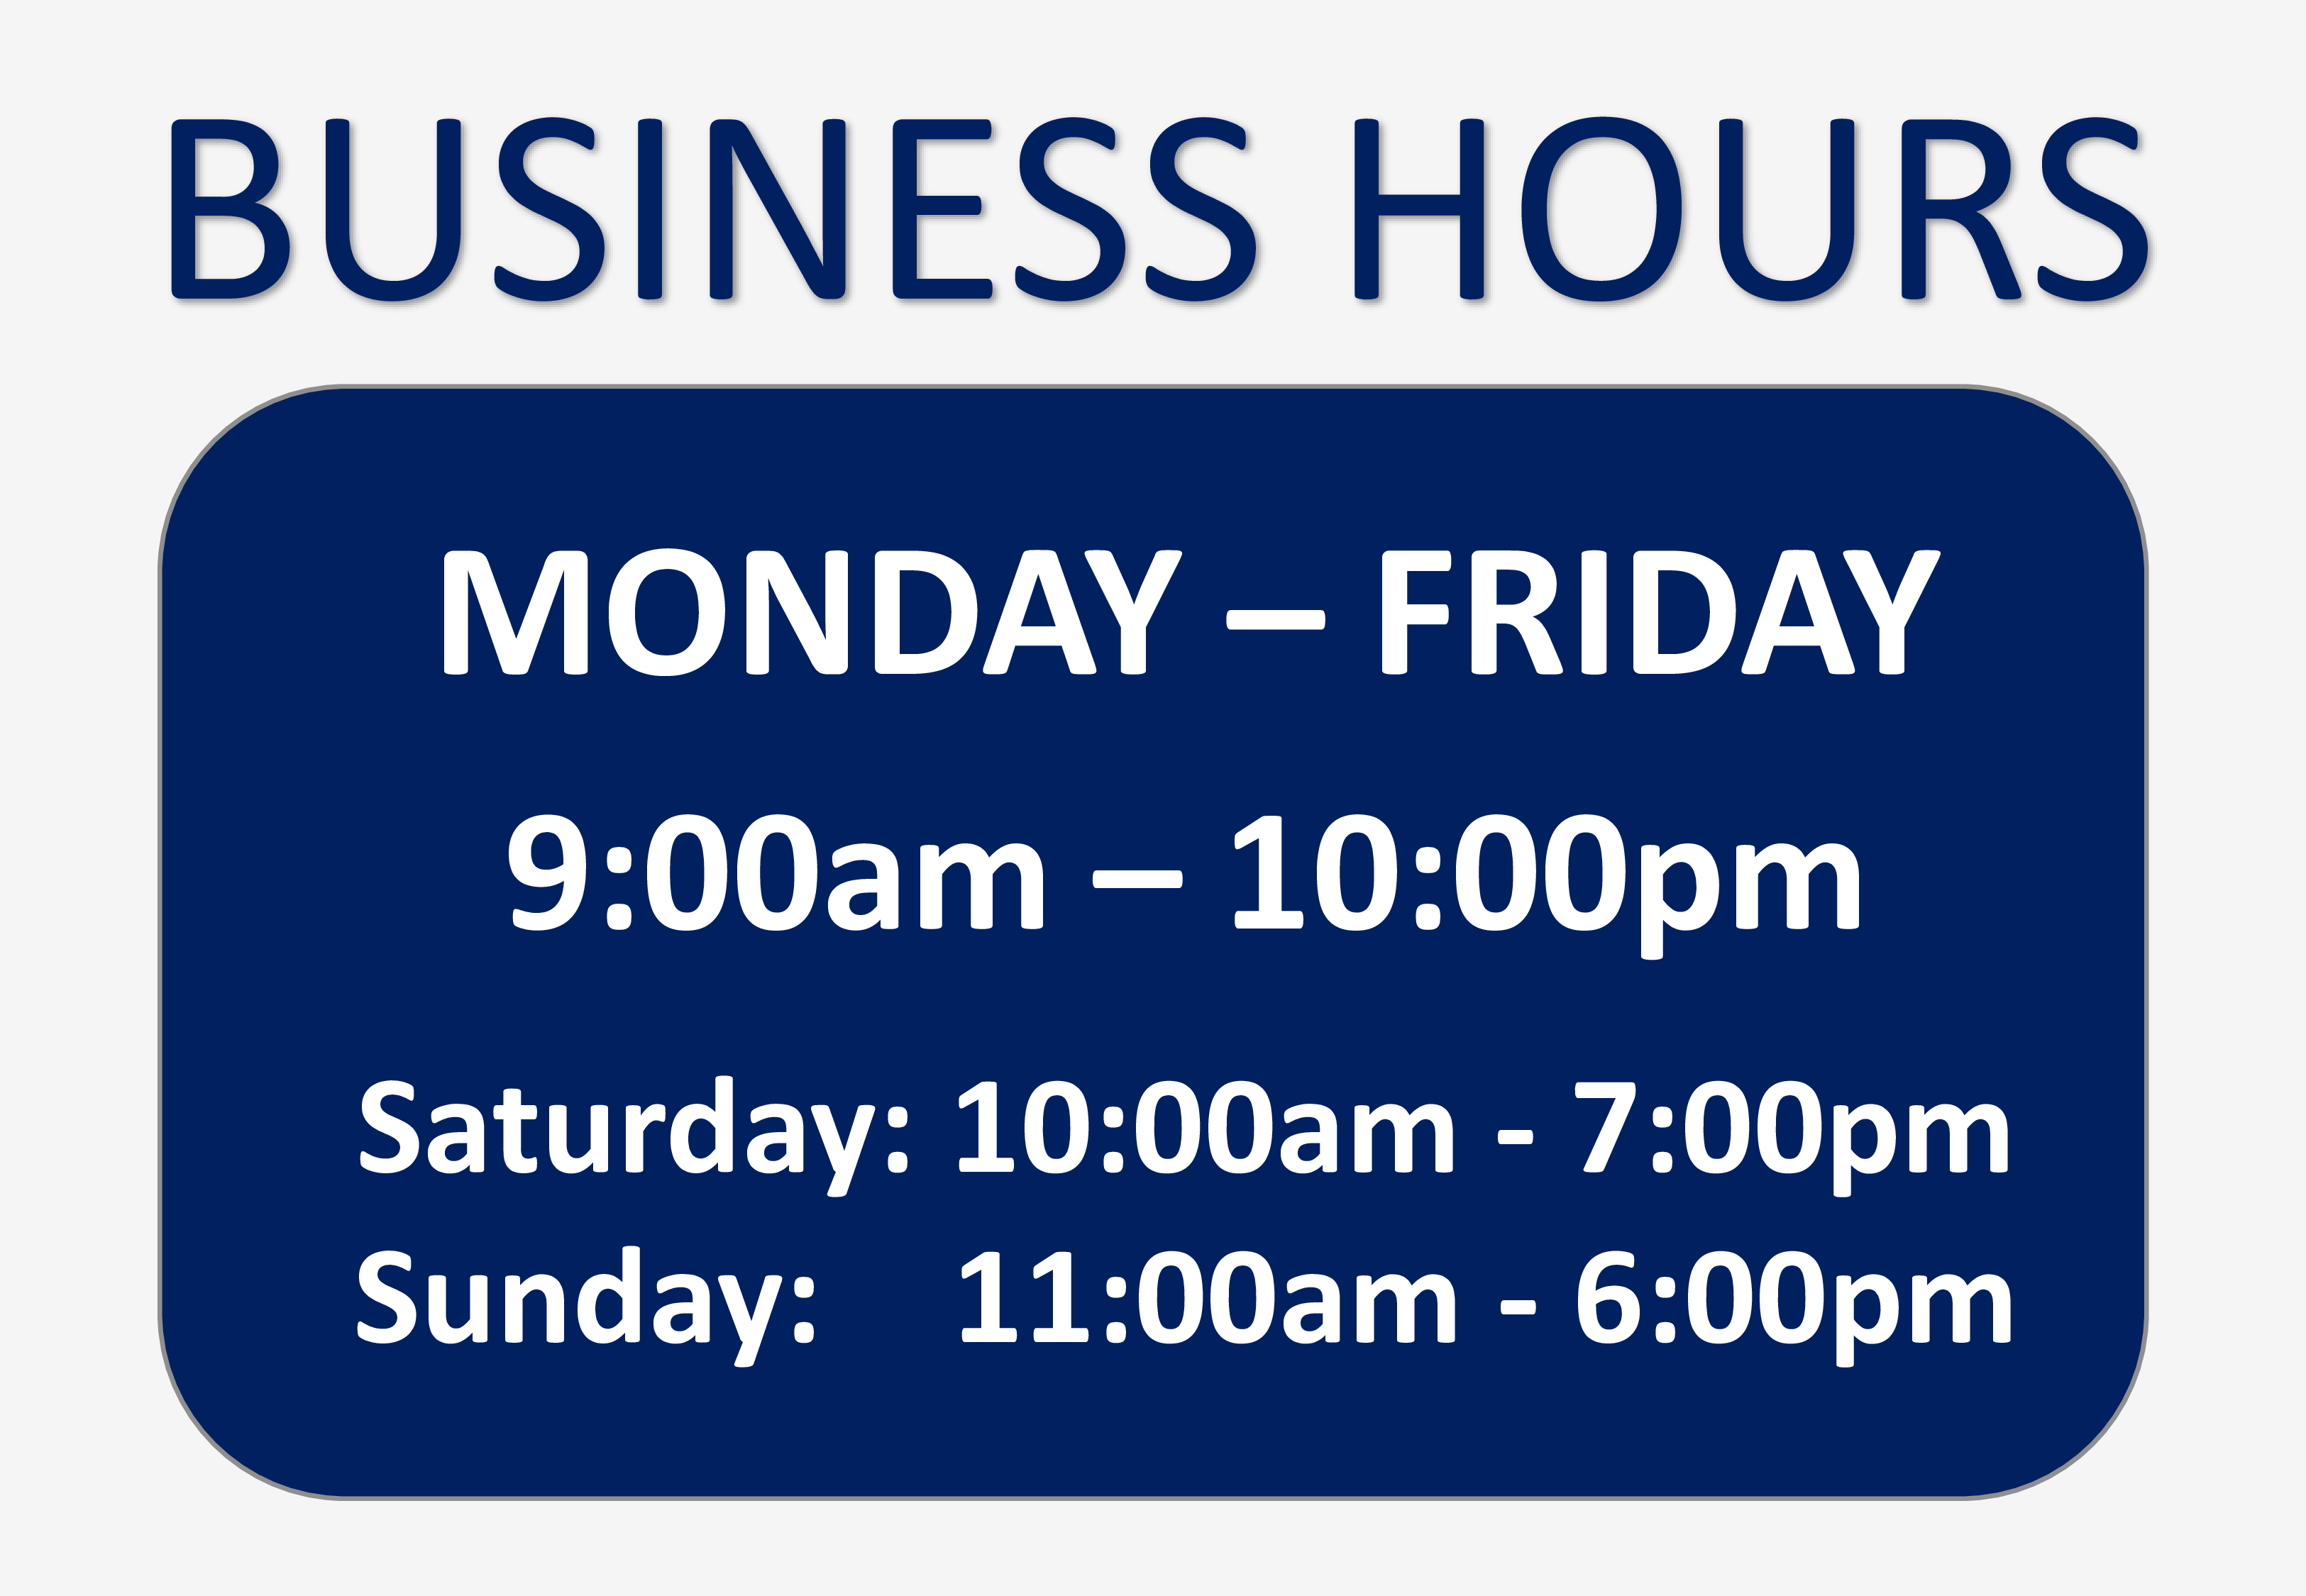 Free business hours sign templates at allbusinesstemplates business hours sign main image download template cheaphphosting Image collections